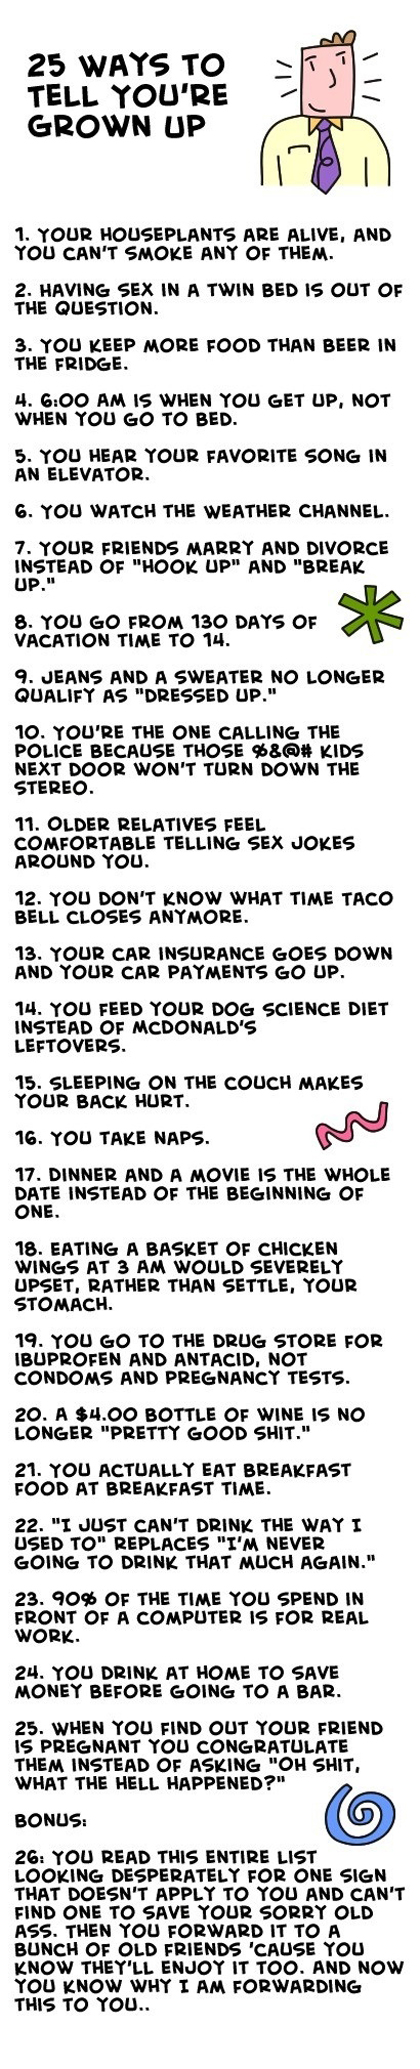 25 ways to tell you are grown up list